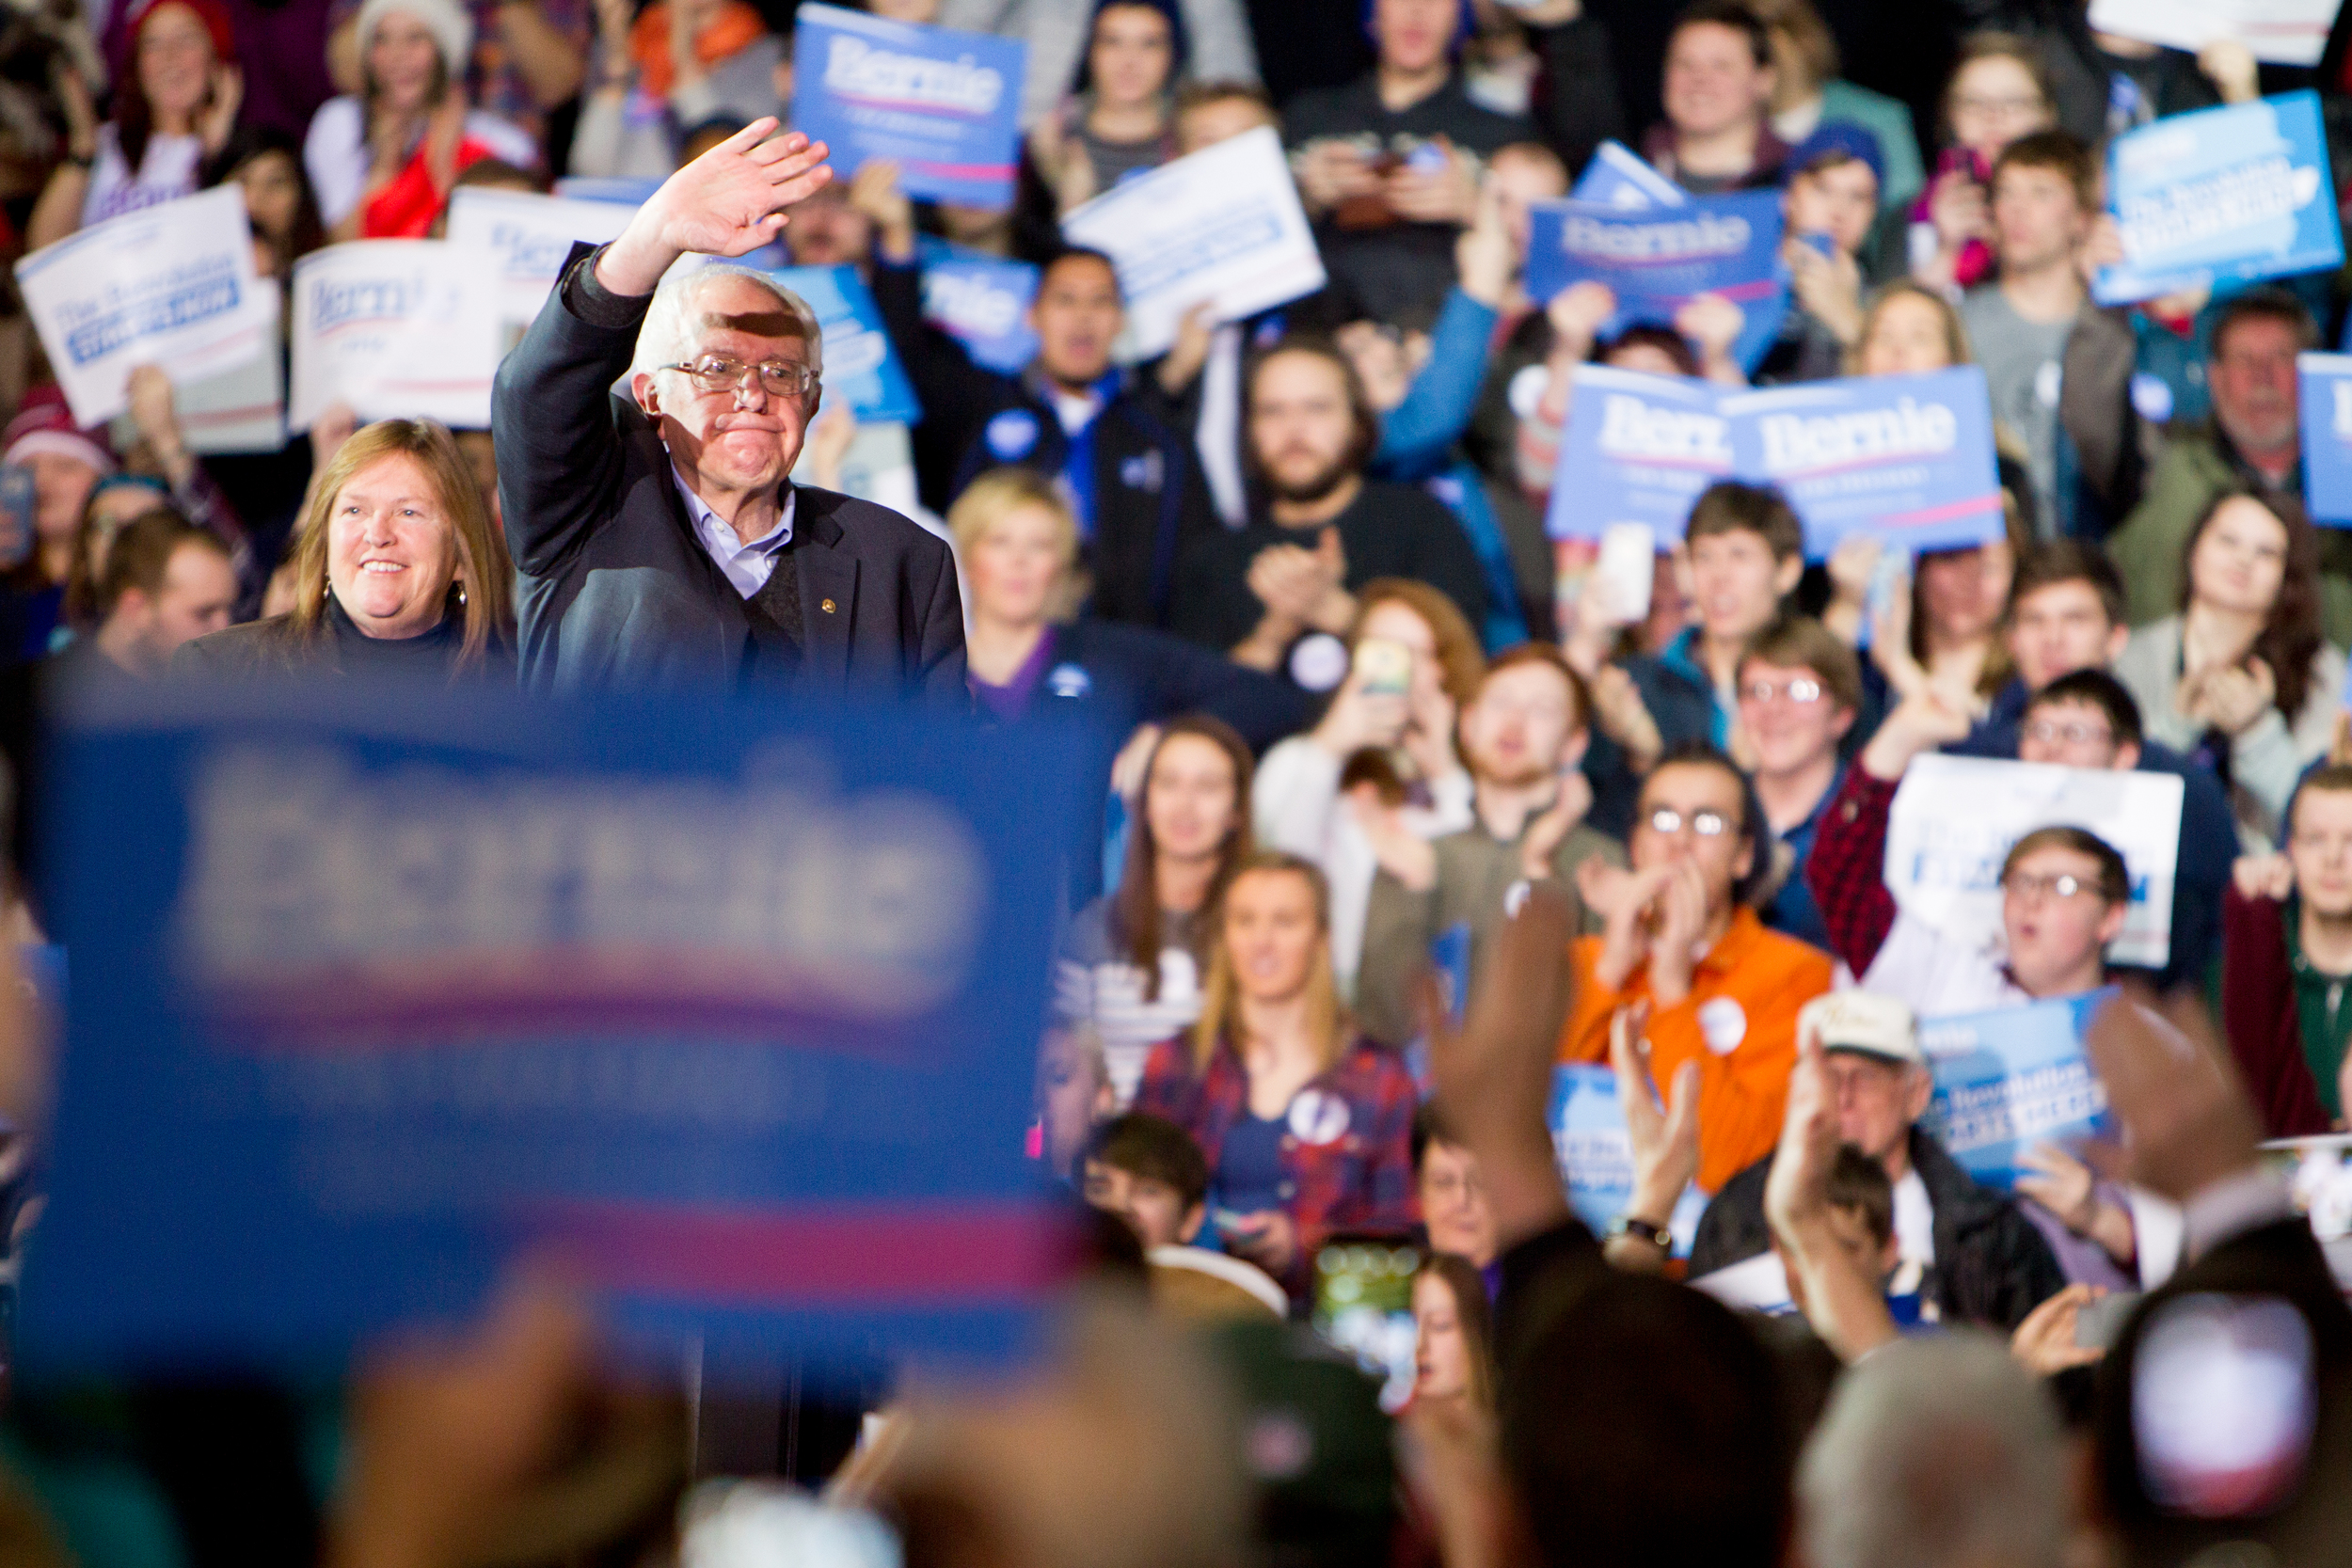 """Walking on stage with his wife the first thing Sanders proclaims when getting to the mic: """"Wow this is a lot of people..."""""""